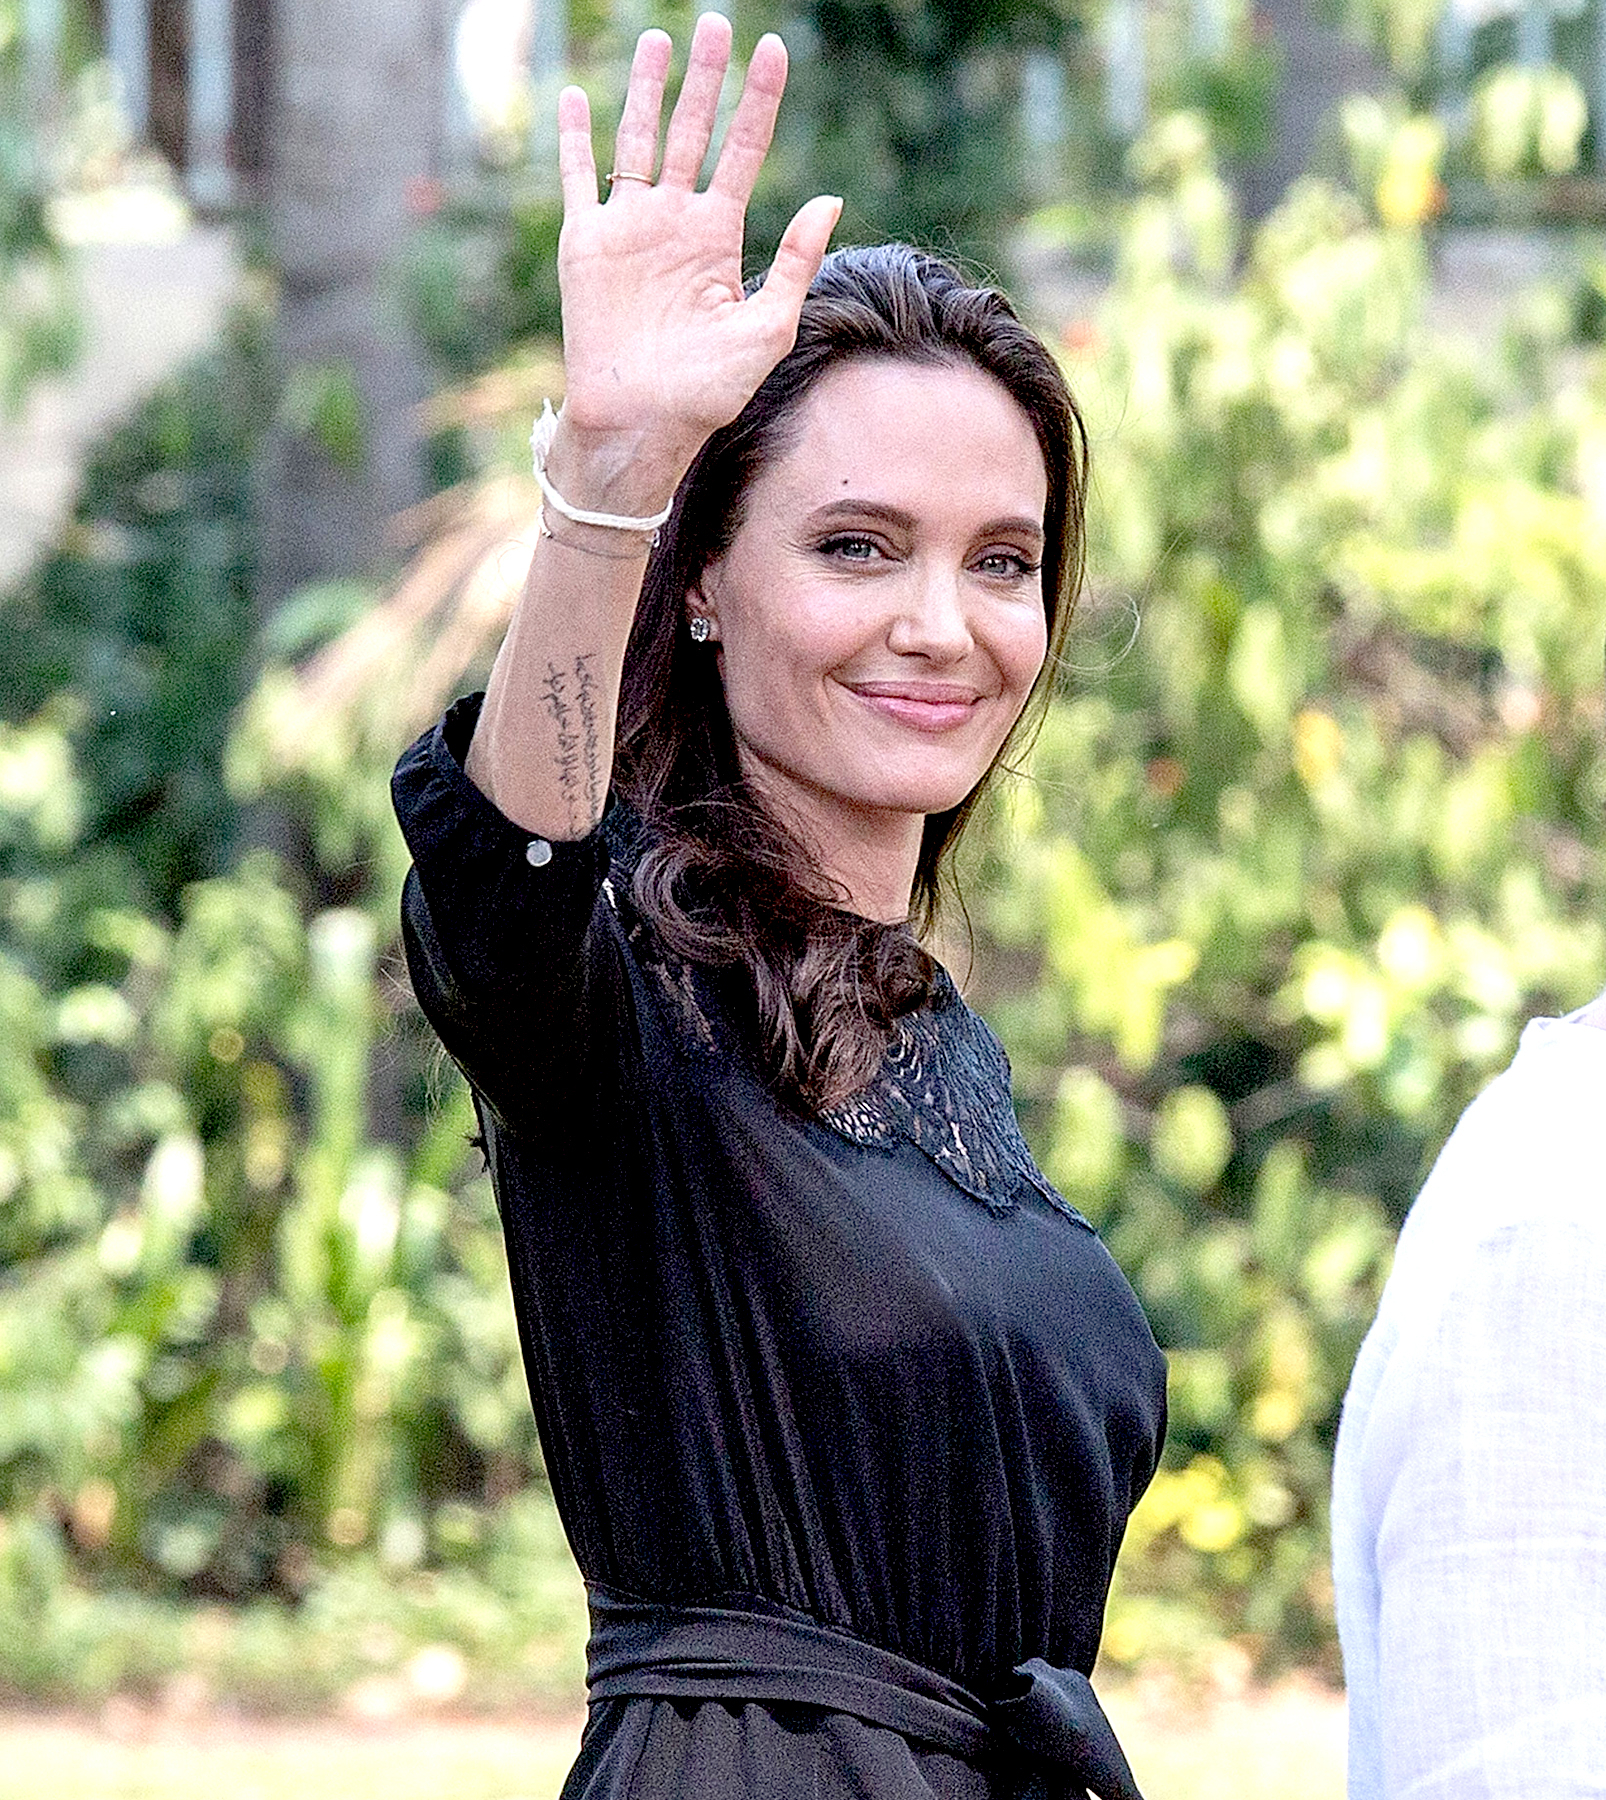 """Angelina Jolie greets members of the press while leaving a press conference ahead of the premiere of her new film """"First They Killed My Father"""" set up at the Raffles Grand Hotel D'Angkor on February 18, 2017 in Siem Reap, Cambodia."""